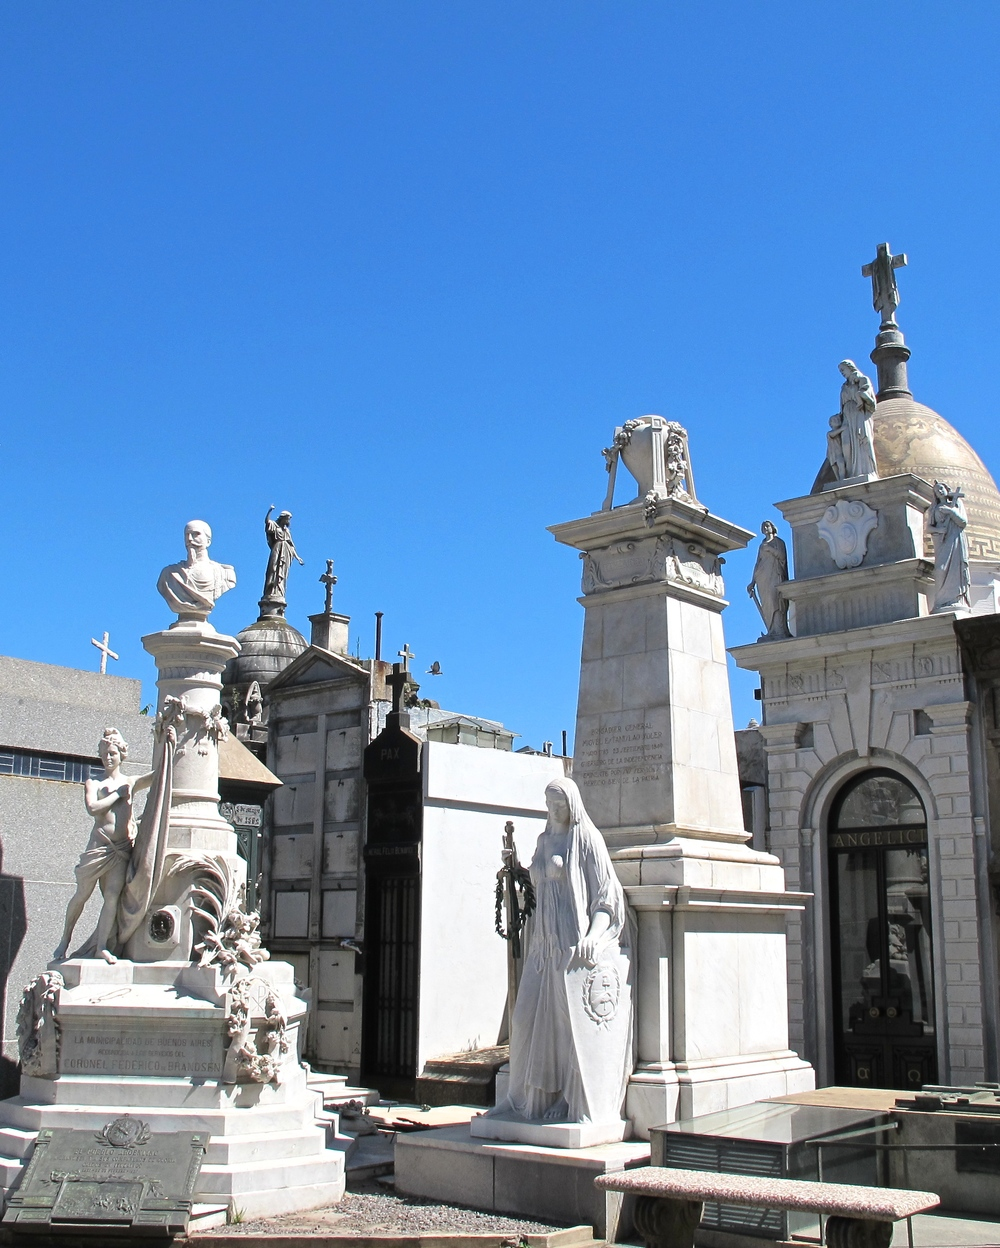 One of the most memorable highlights from BA was the Recoleta Cemetery. A massive cemetery made up of breathtaking mausoleums housing some of the most famous, wealthy, and powerful Argentines.